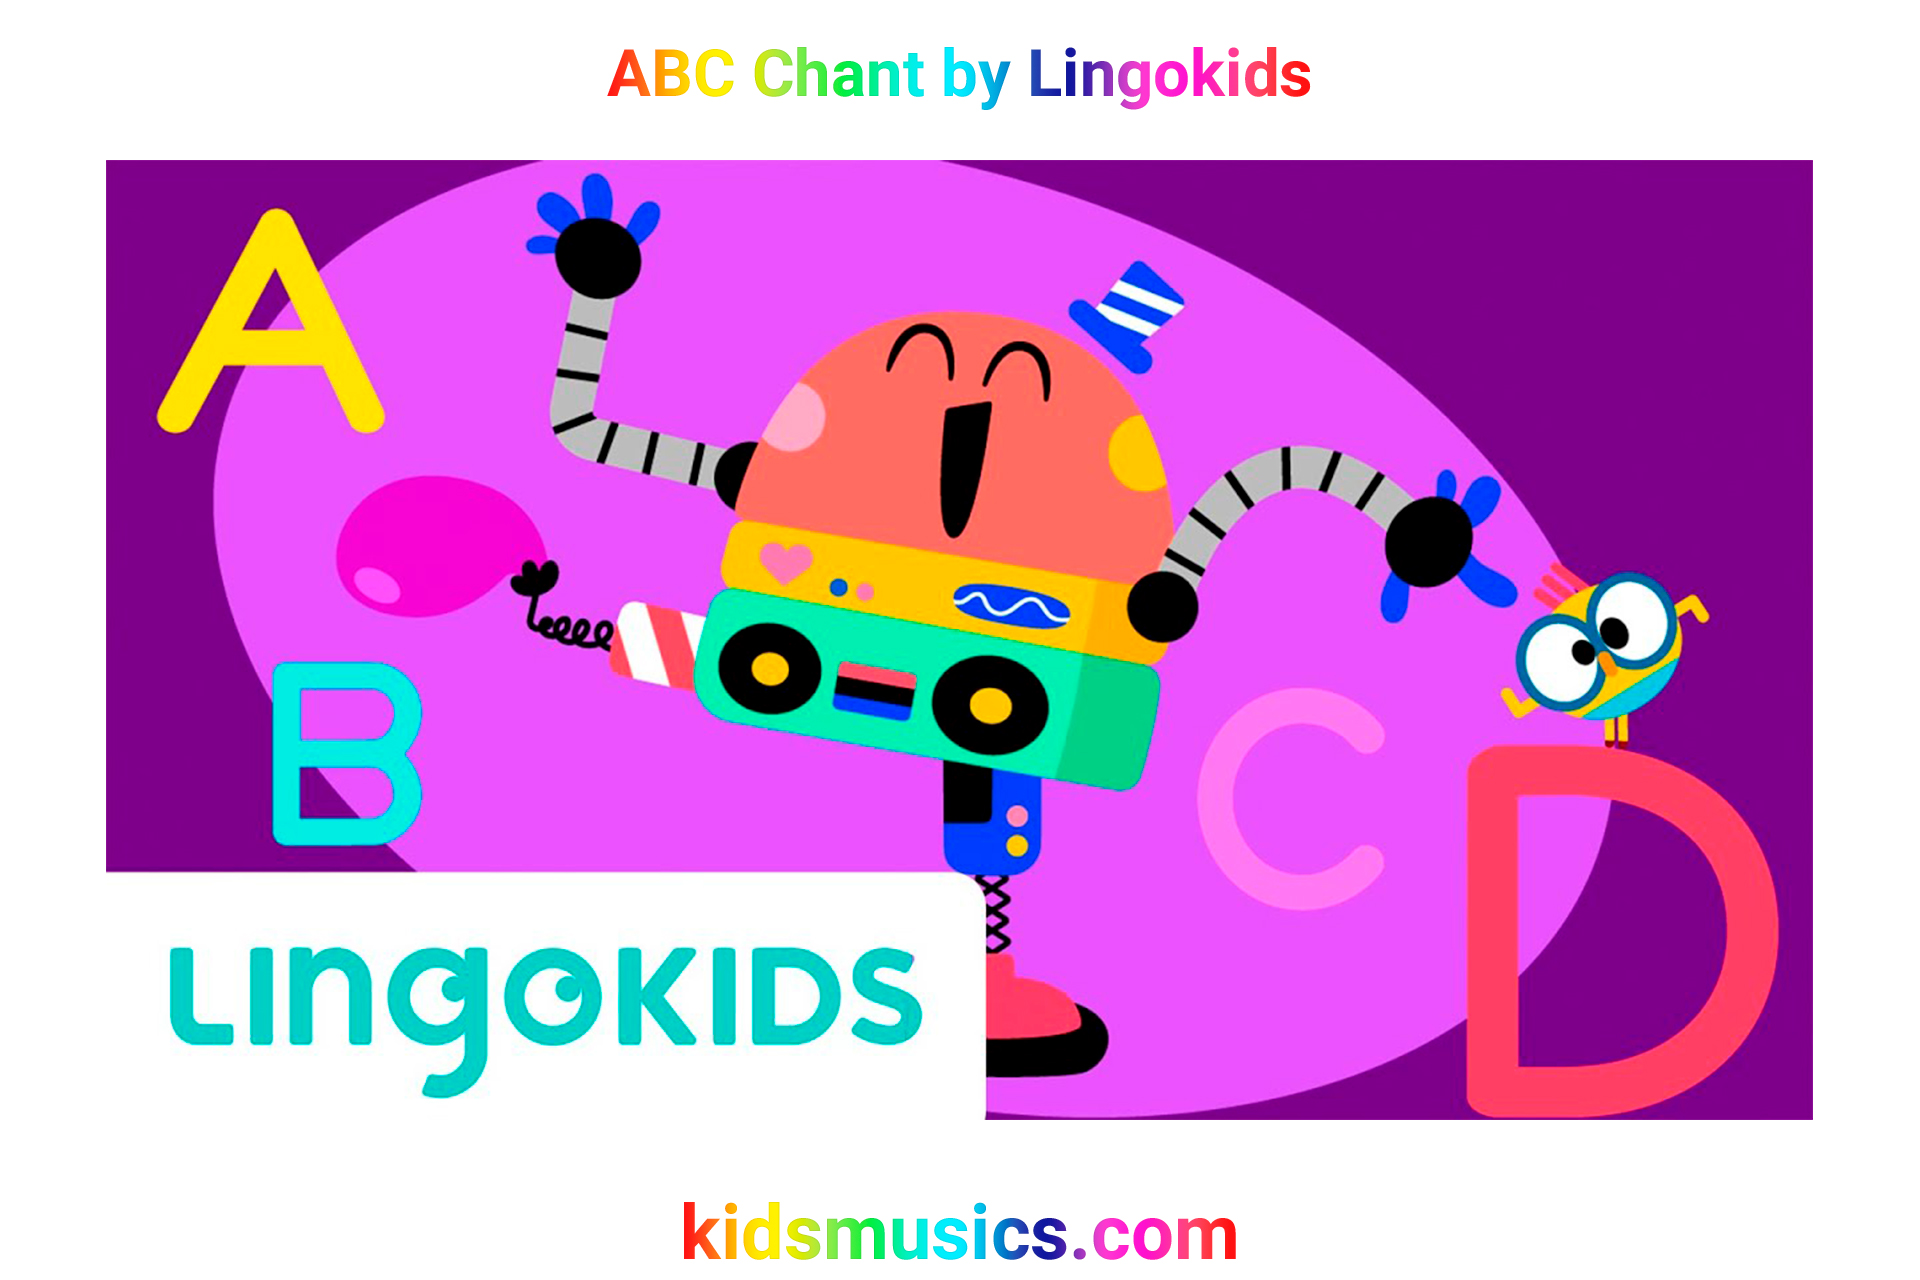 Kidsmusics Abc Chant By Lingokids Free Download Mp4 Video 720p Mp3 Pdf Lyrics Kids Music